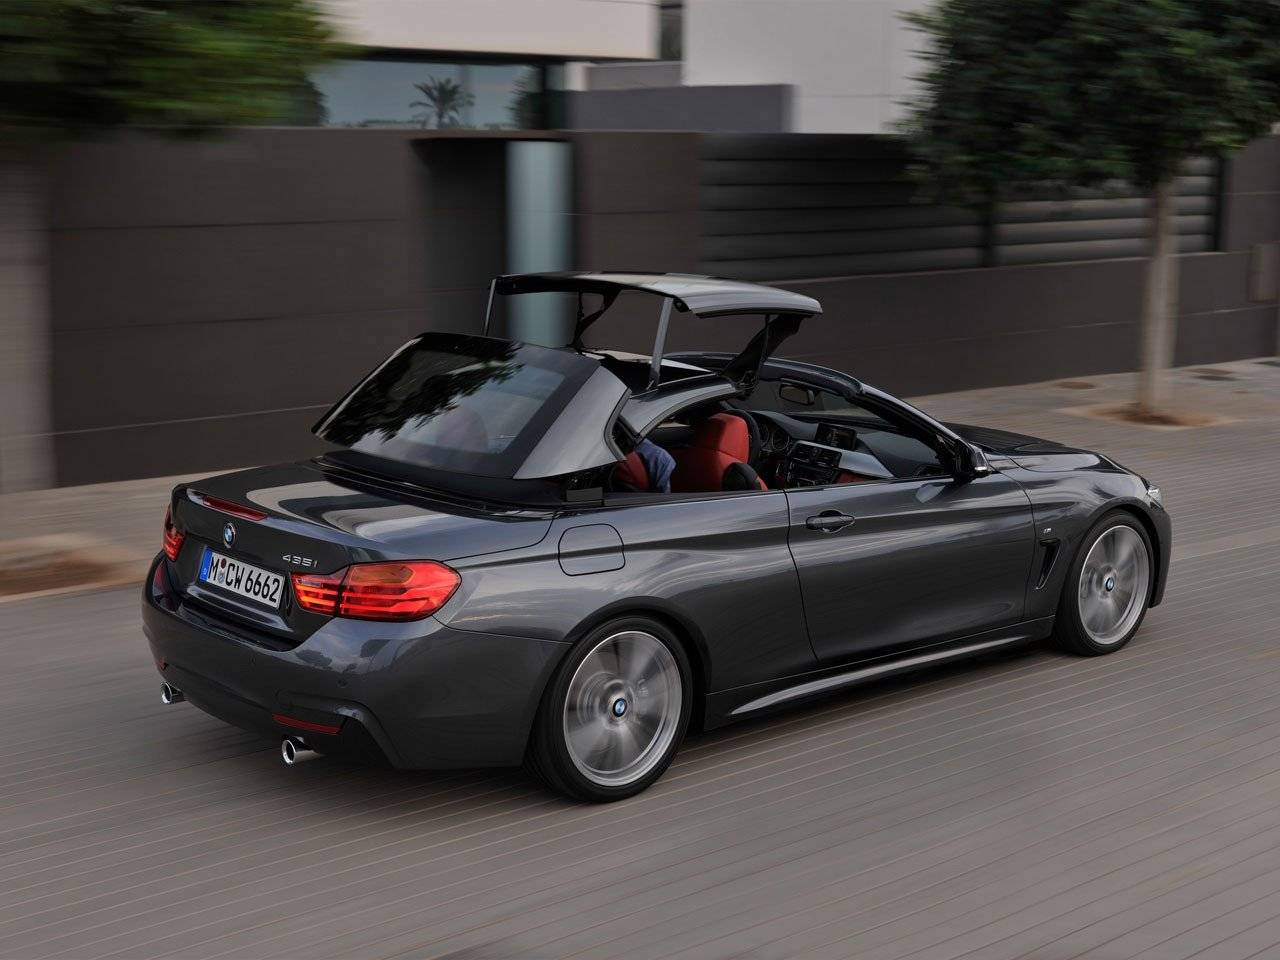 bmw 4 serie cabrio officieel welkom geheten autonieuws. Black Bedroom Furniture Sets. Home Design Ideas